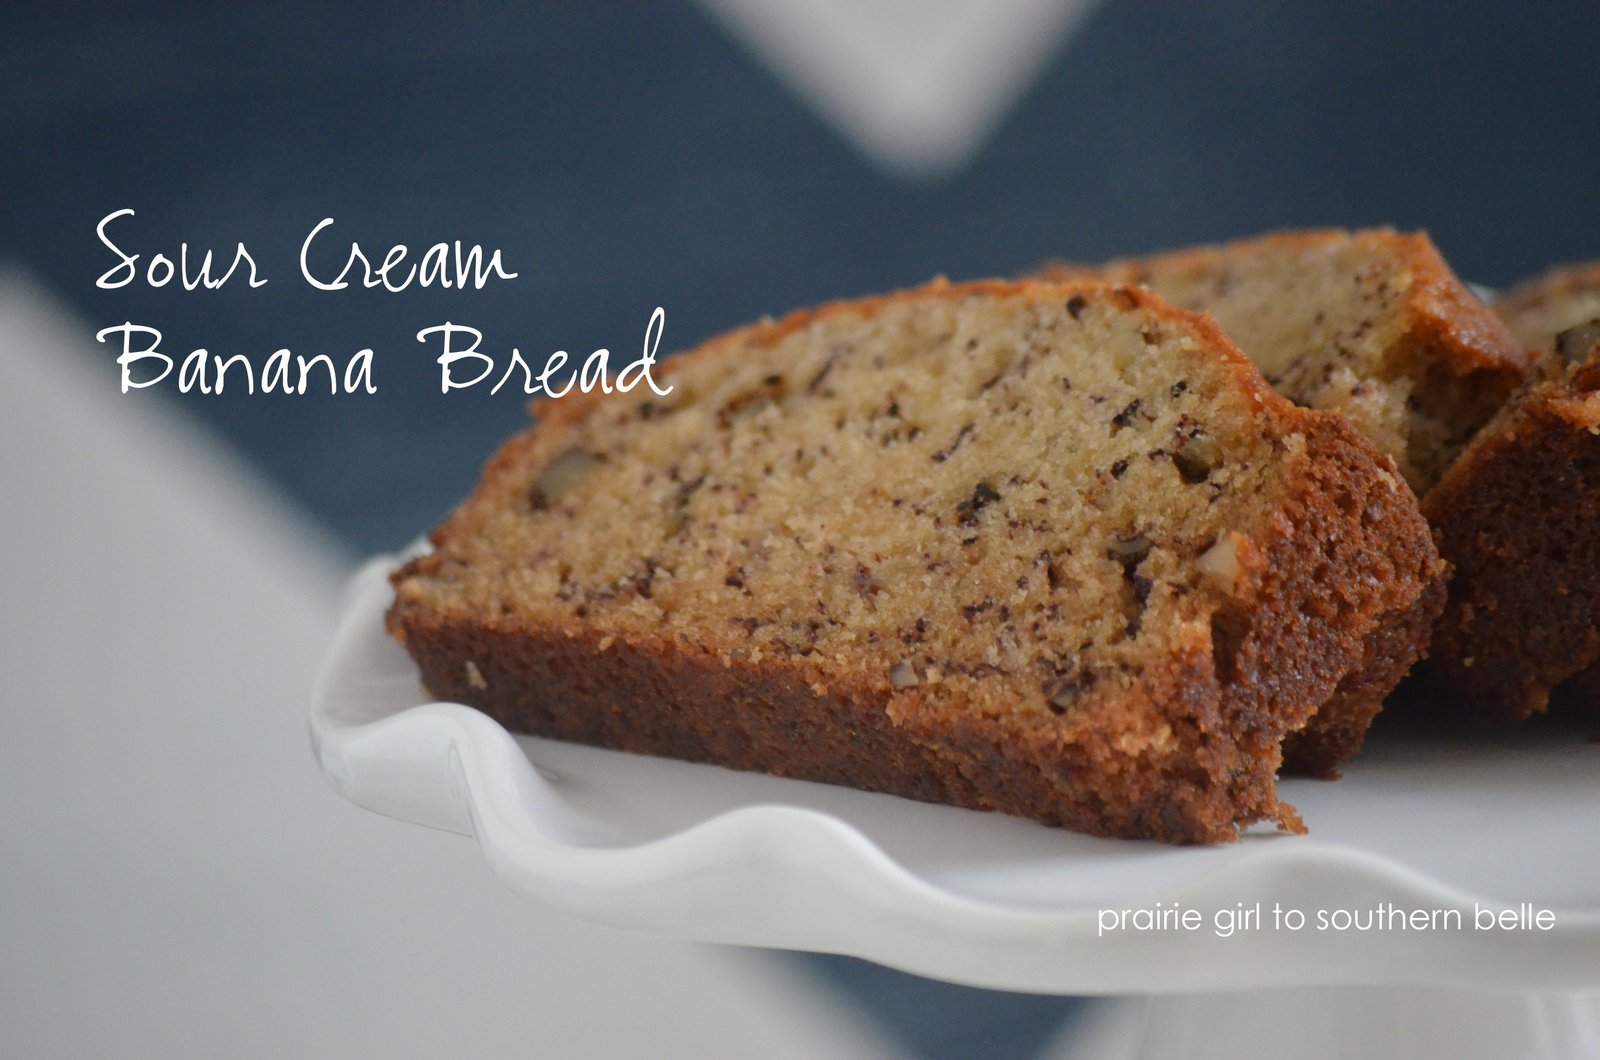 Prairie girl to southern belle sour cream banana bread recipe sour cream banana bread recipe forumfinder Image collections